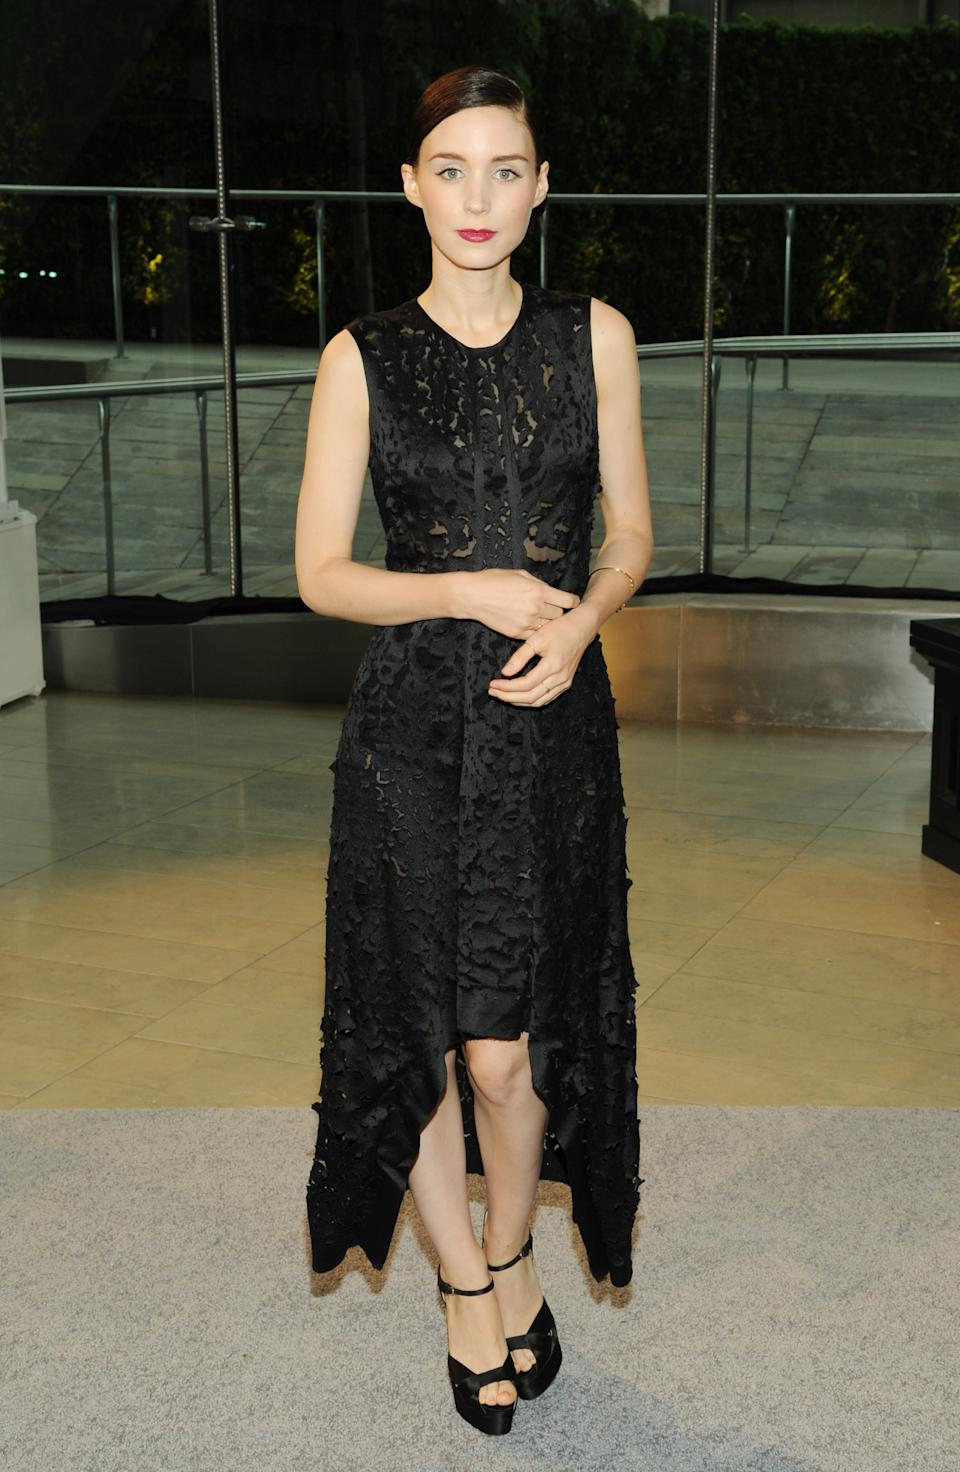 Actress Rooney Mara attends the 2013 CFDA Fashion Awards at Alice Tully Hall on Monday, June 3, 2013 in New York. (Photo by Evan Agostini/Invision/AP)